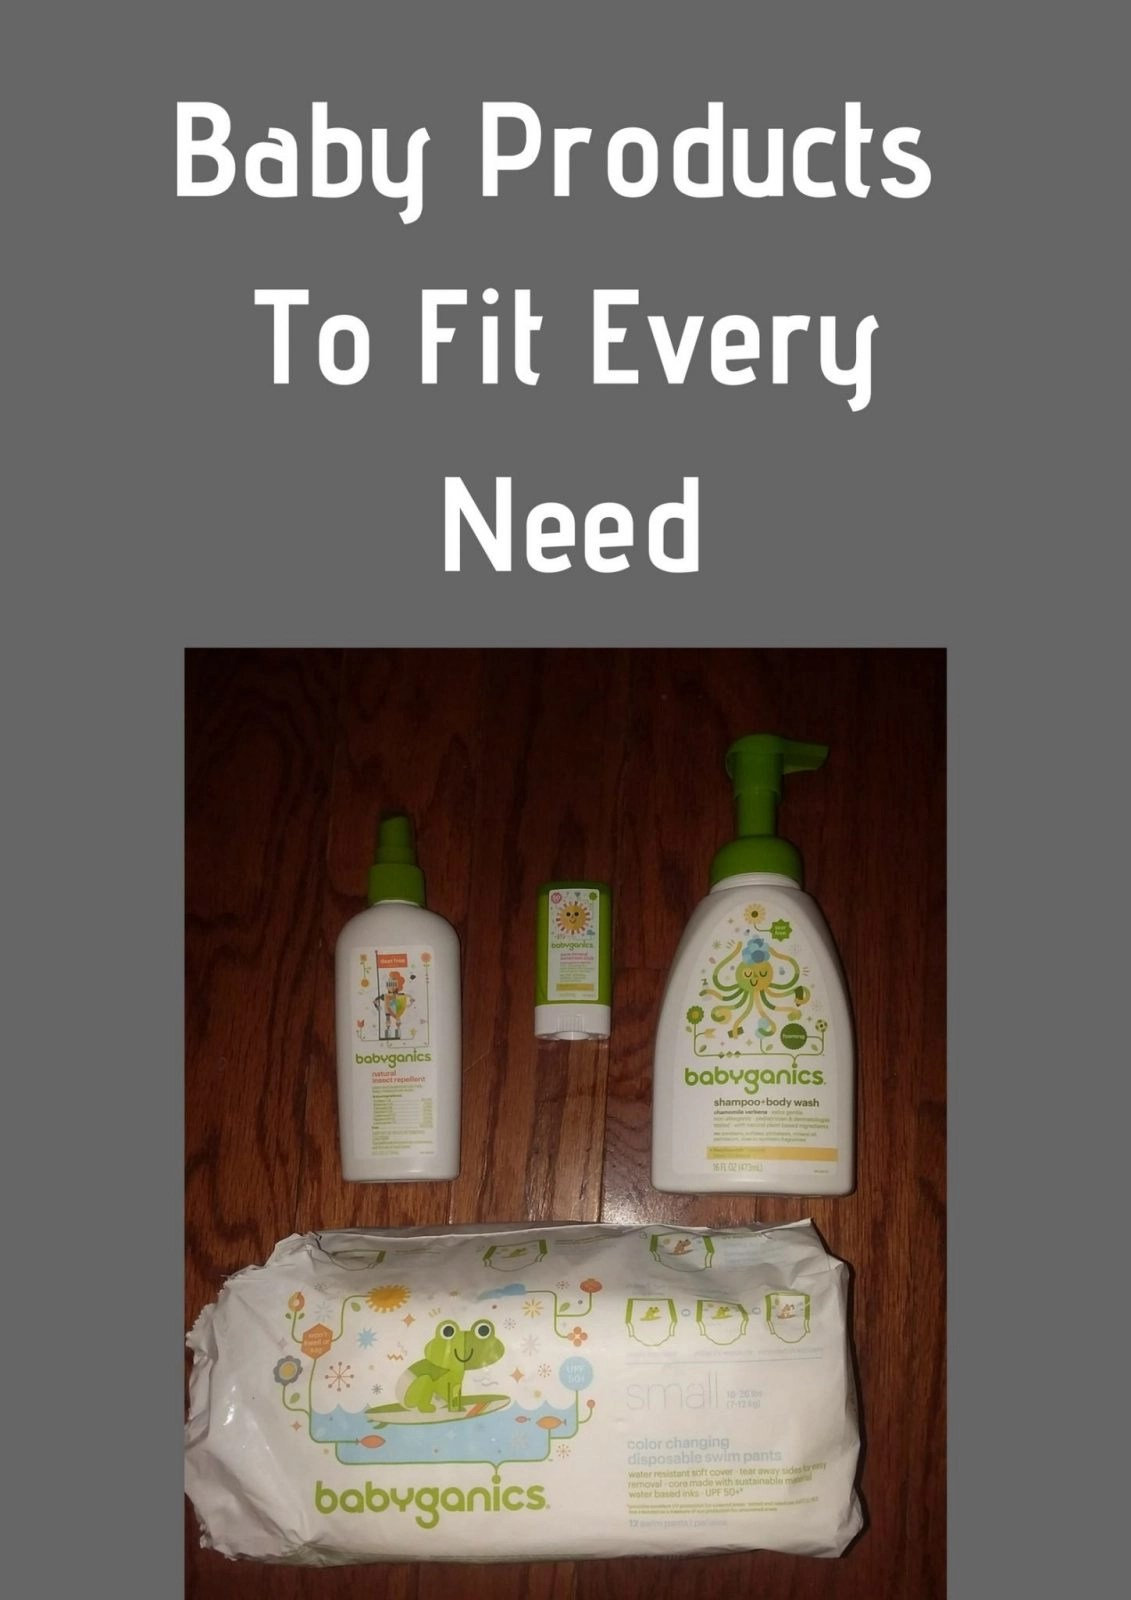 Baby Products To Fit Every Need